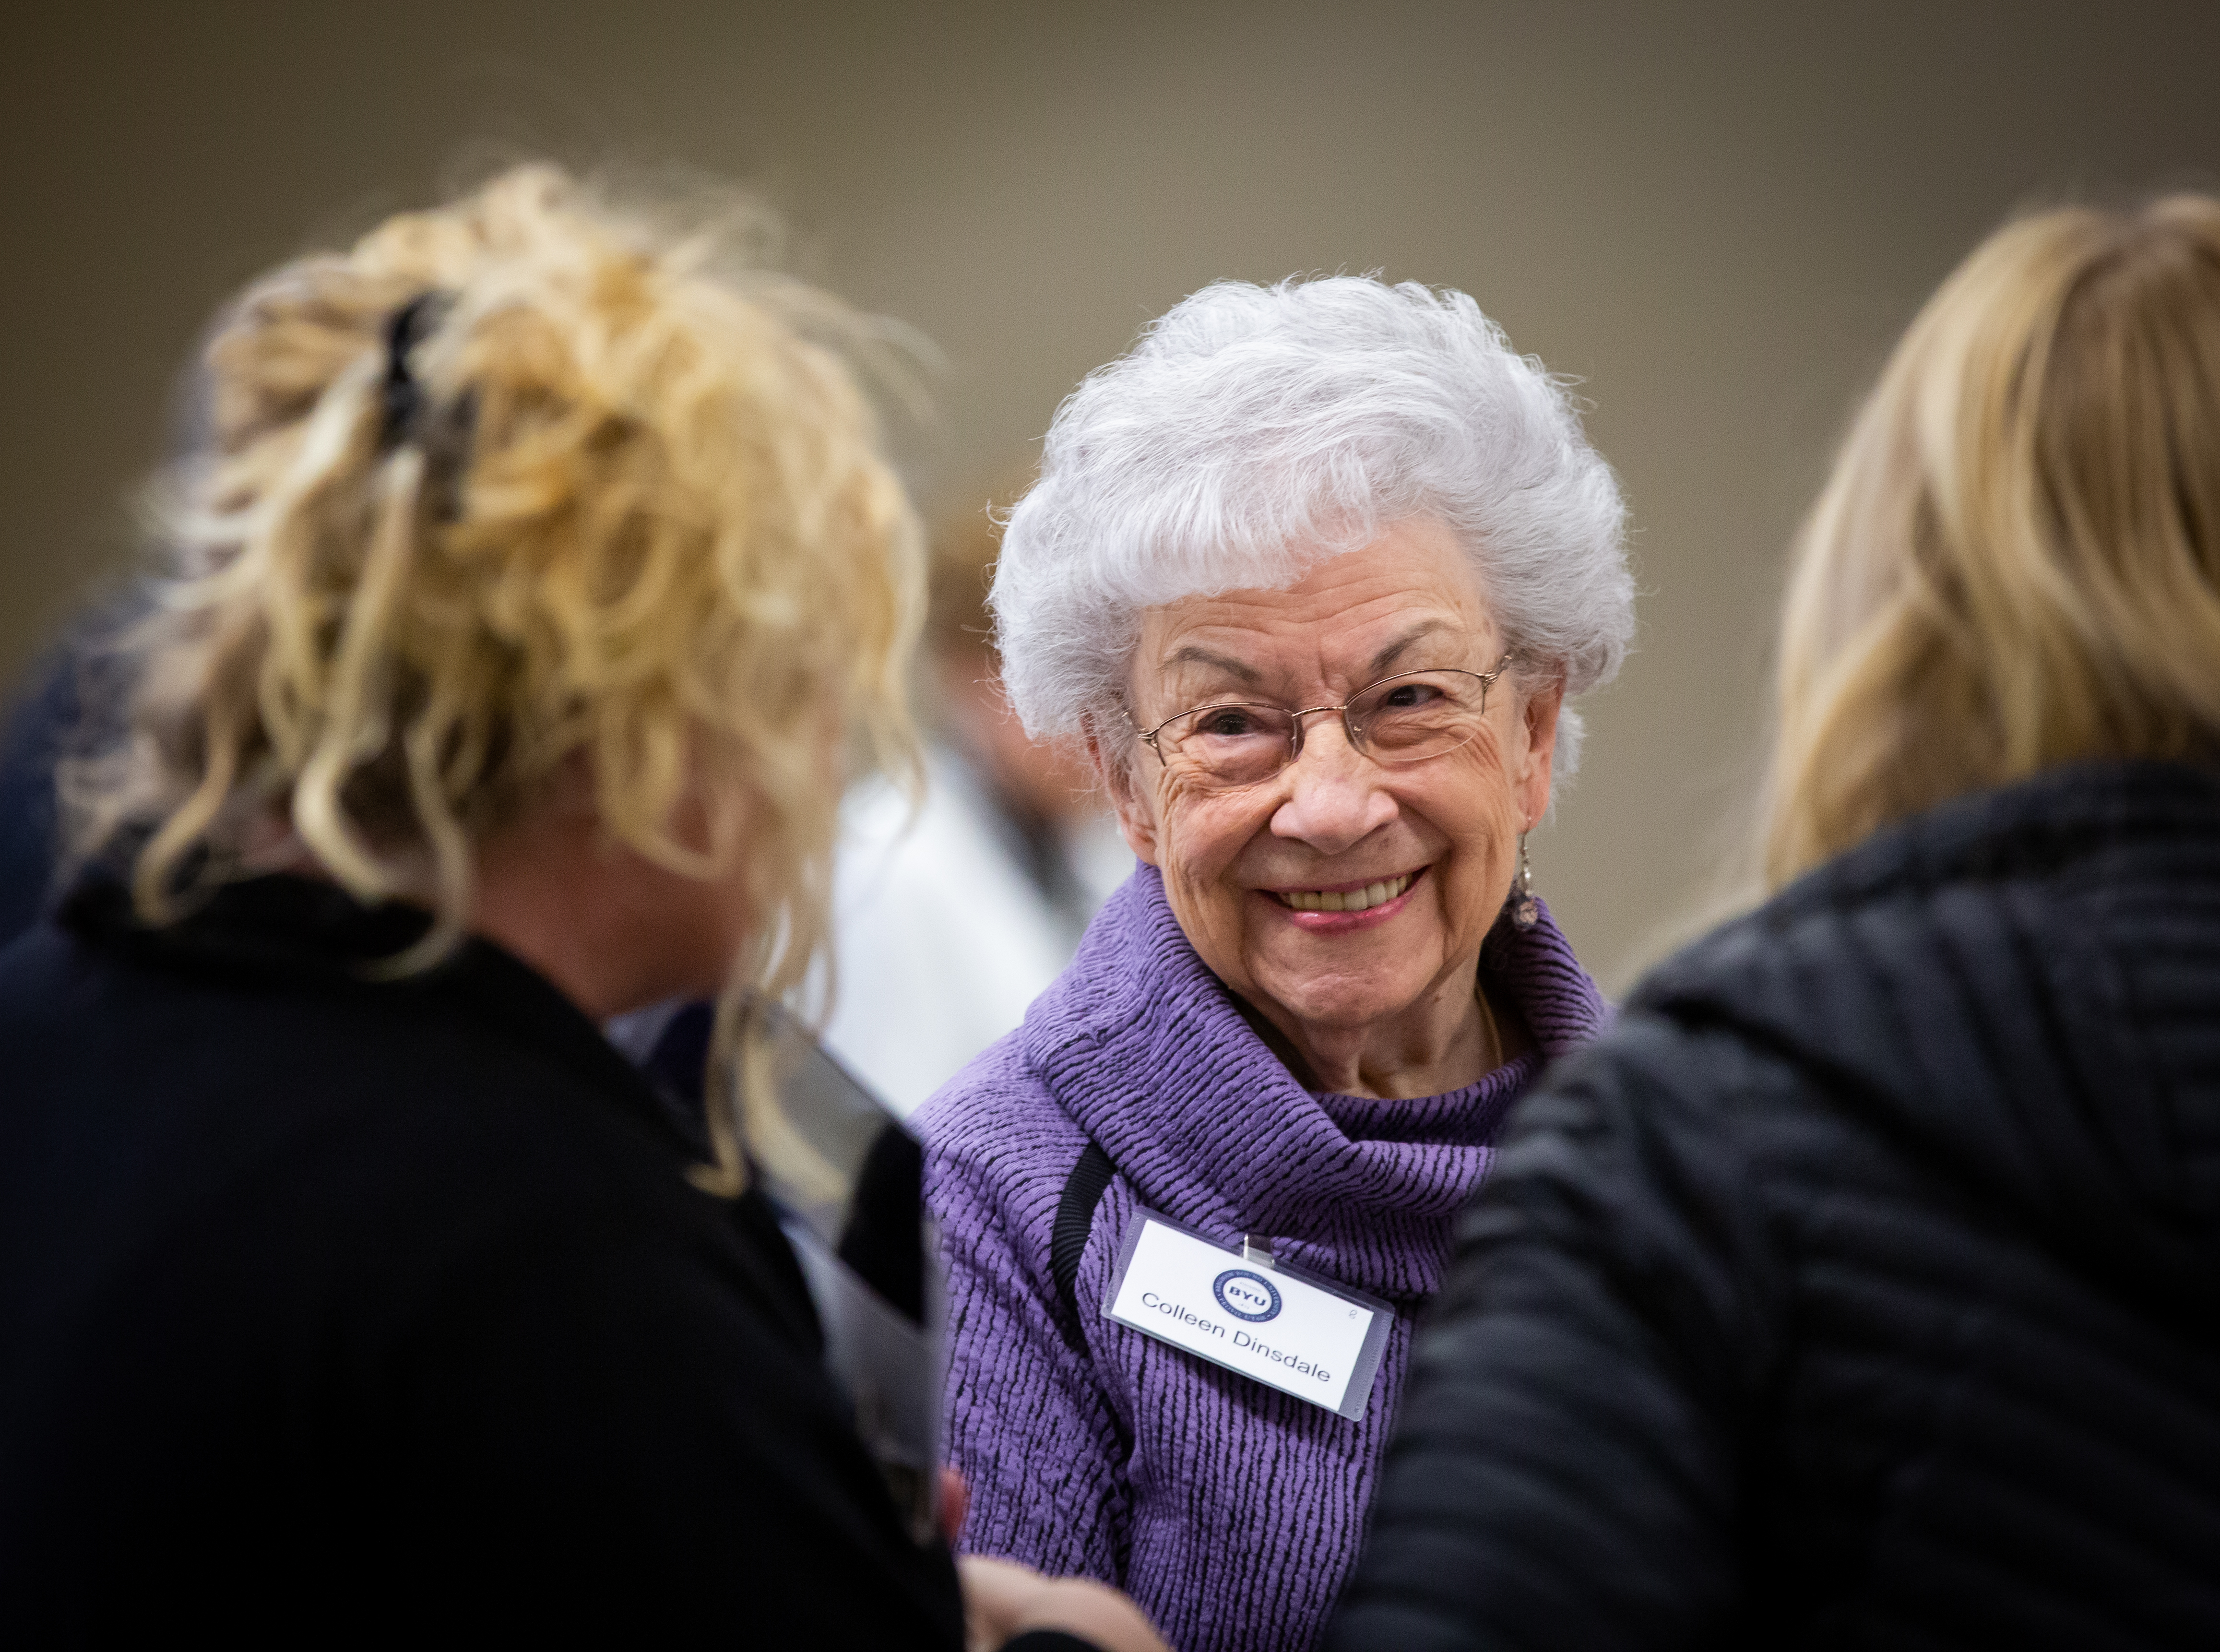 Attendees of the 15th Annual Marjorie Pay Hinckley Lecture mingle at a dinner held before the lecture on Feb. 7, 2019 on the BYU Provo, Utah campus.